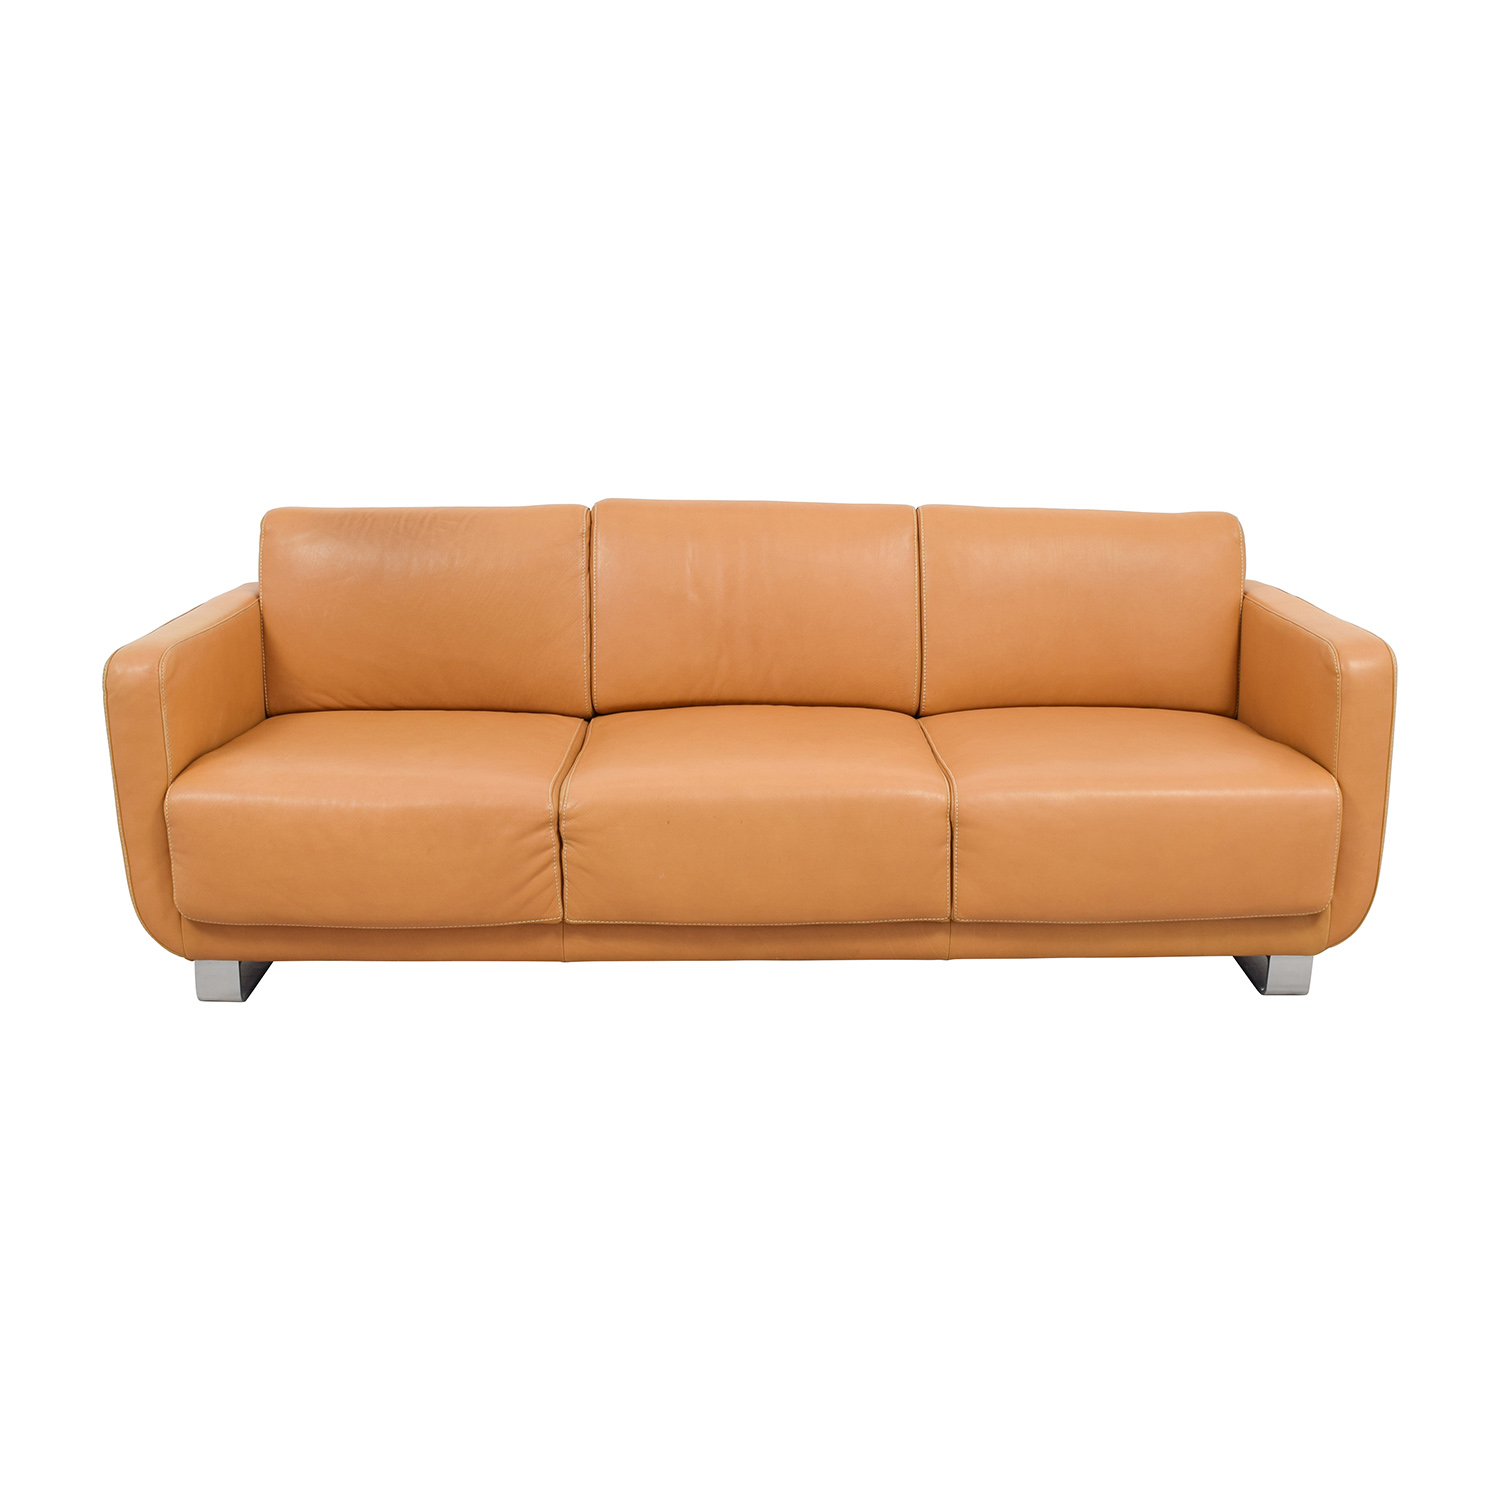 W. Schillig Light Brown Leather Sofa Sale